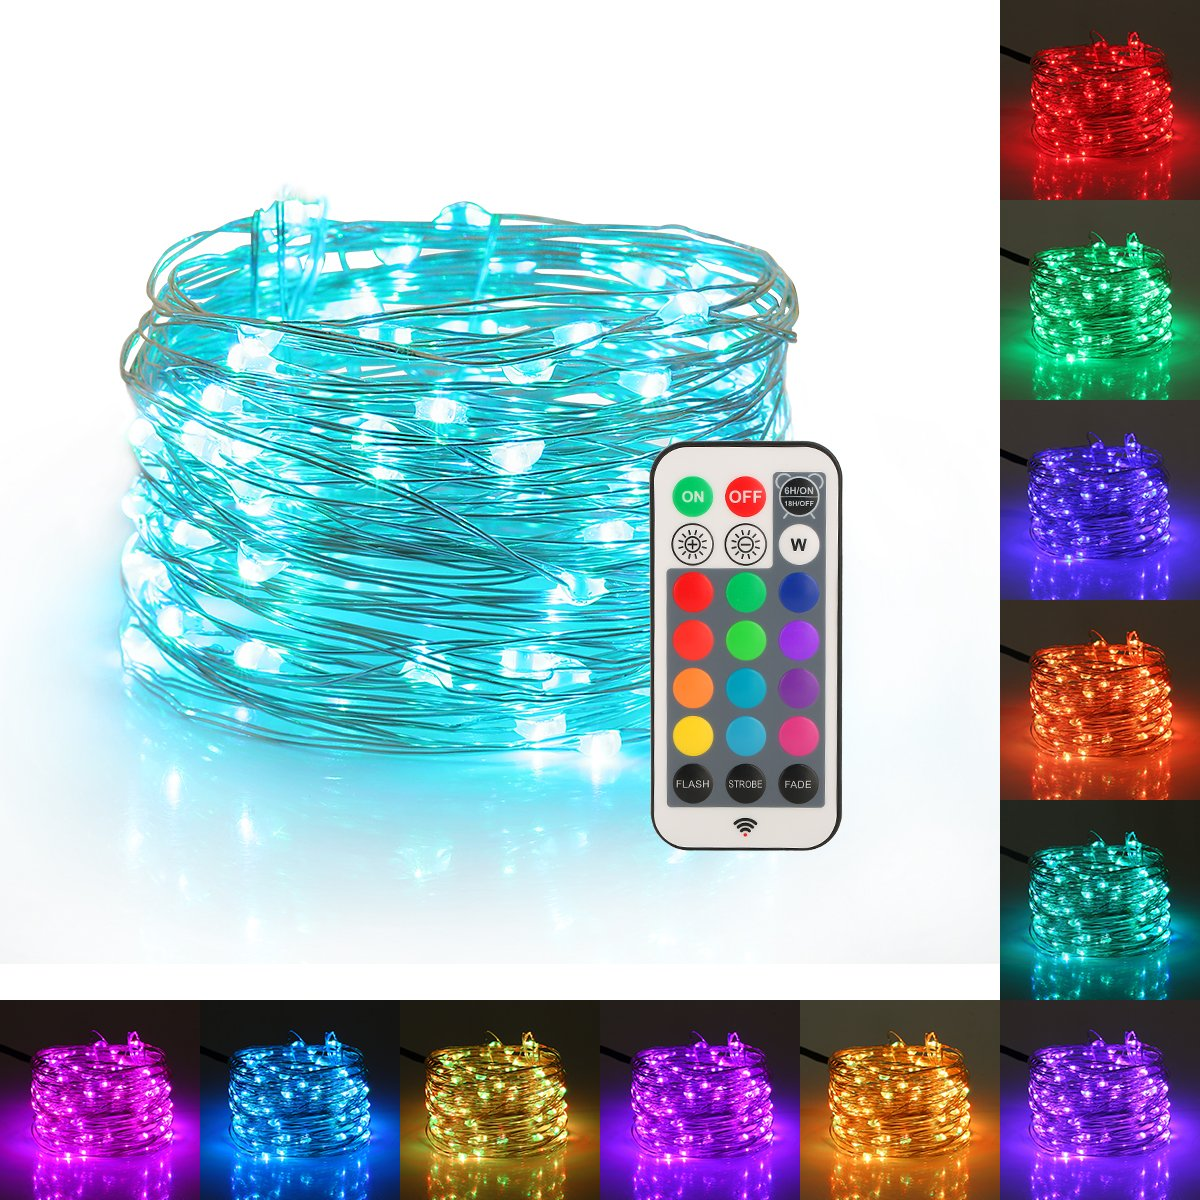 YIHONG Fairy Lights USB Plug-In String Lights With RF Remote 33ft Firefly Twinkle Lights For Bedroom Party Decoration Wedding,13 Vibrant Colors, Fade Flash Strobe Mode